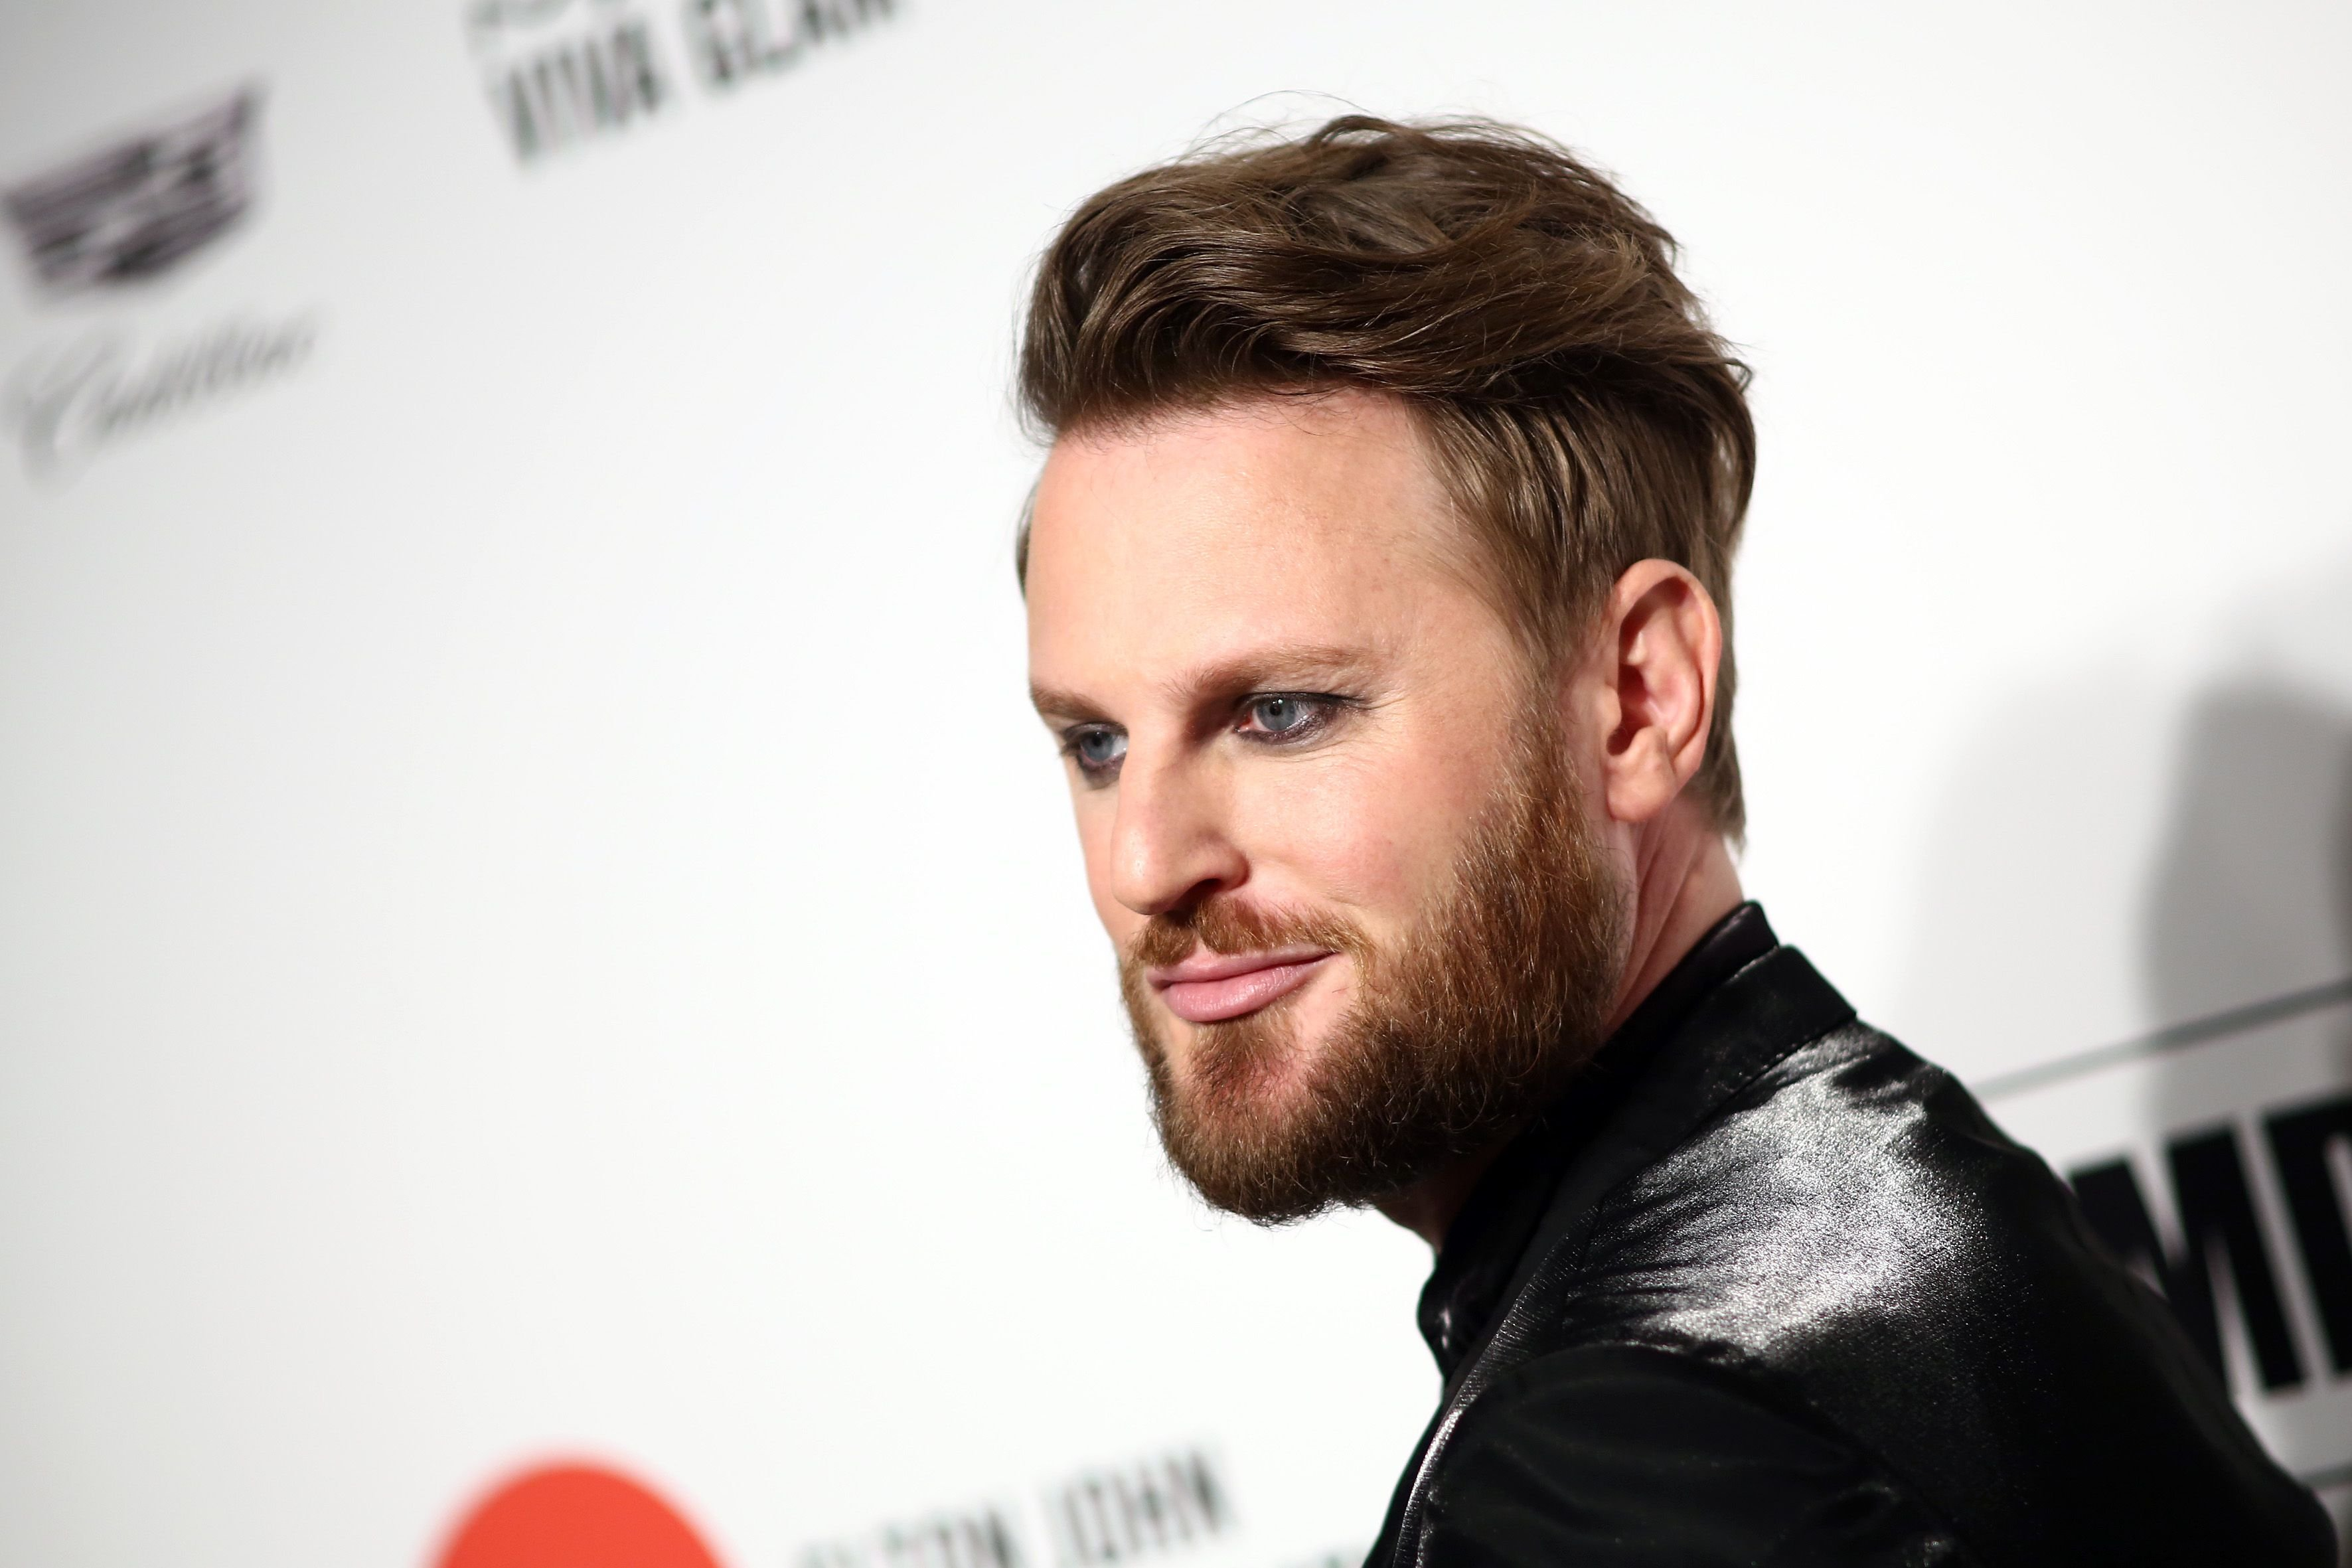 Bobby Berk walks the red carpet at the Elton John AIDS Foundation Academy Awards Viewing Party / Getty Images